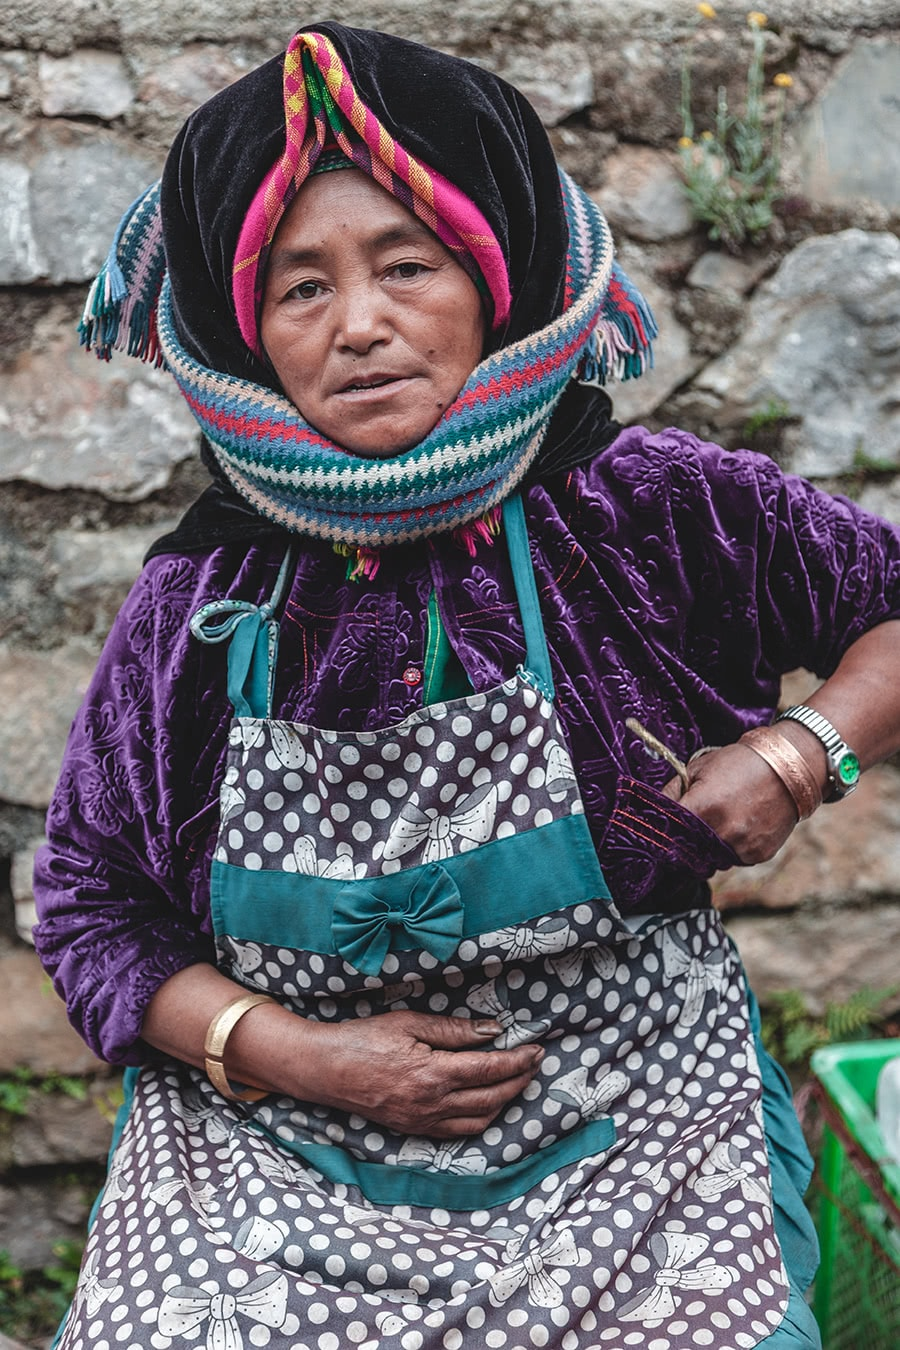 Hmong woman at the Xa Phin market in Dong Van.